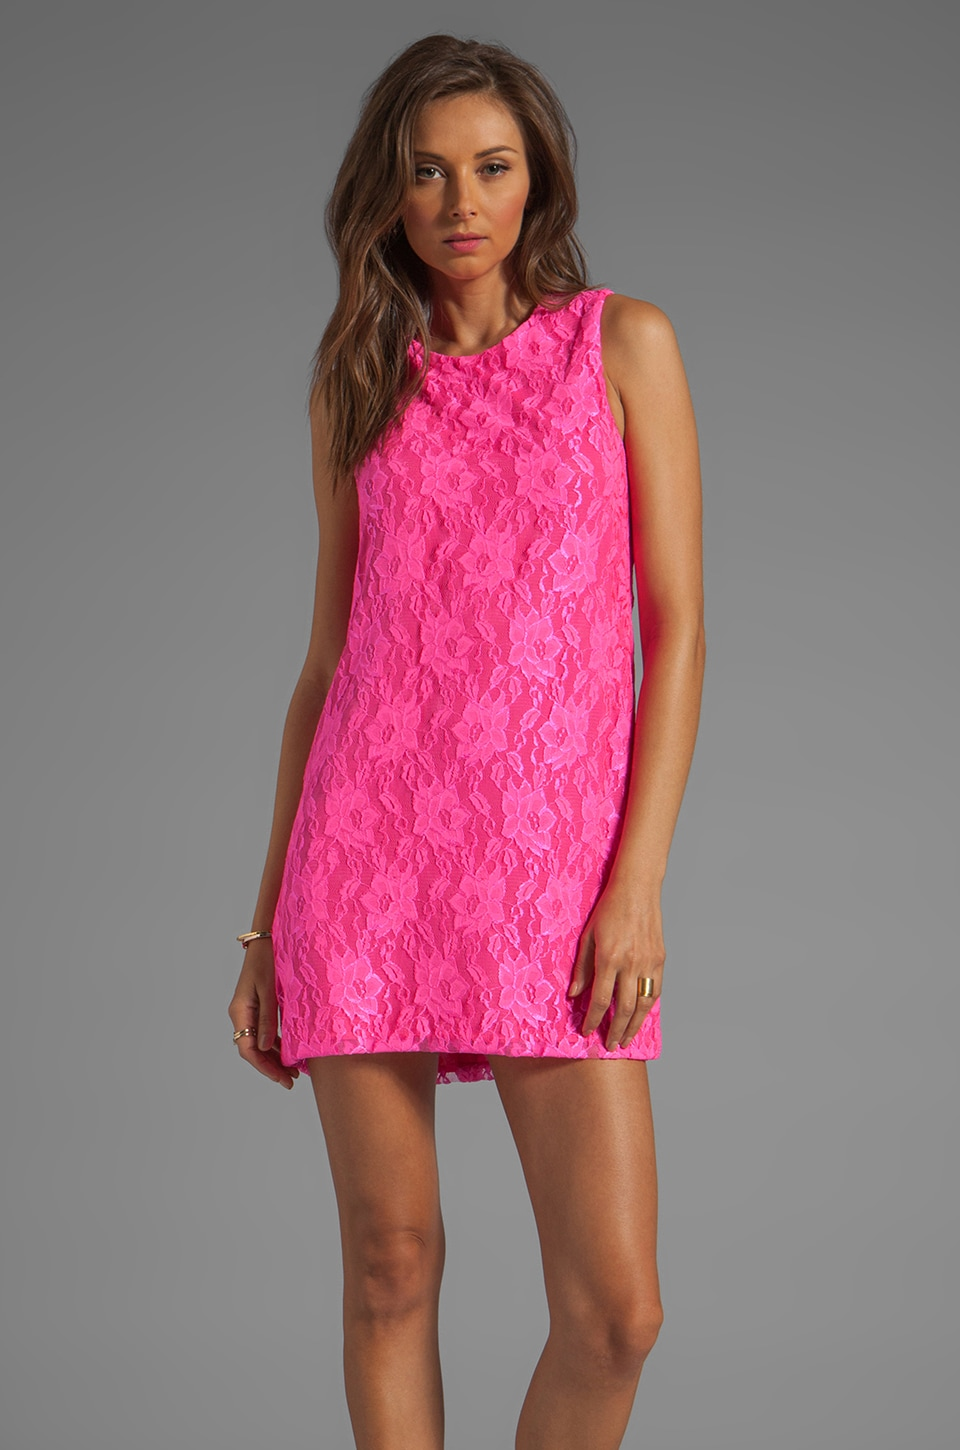 Naven Neon Collection Twiggy Dress in Neon Pink